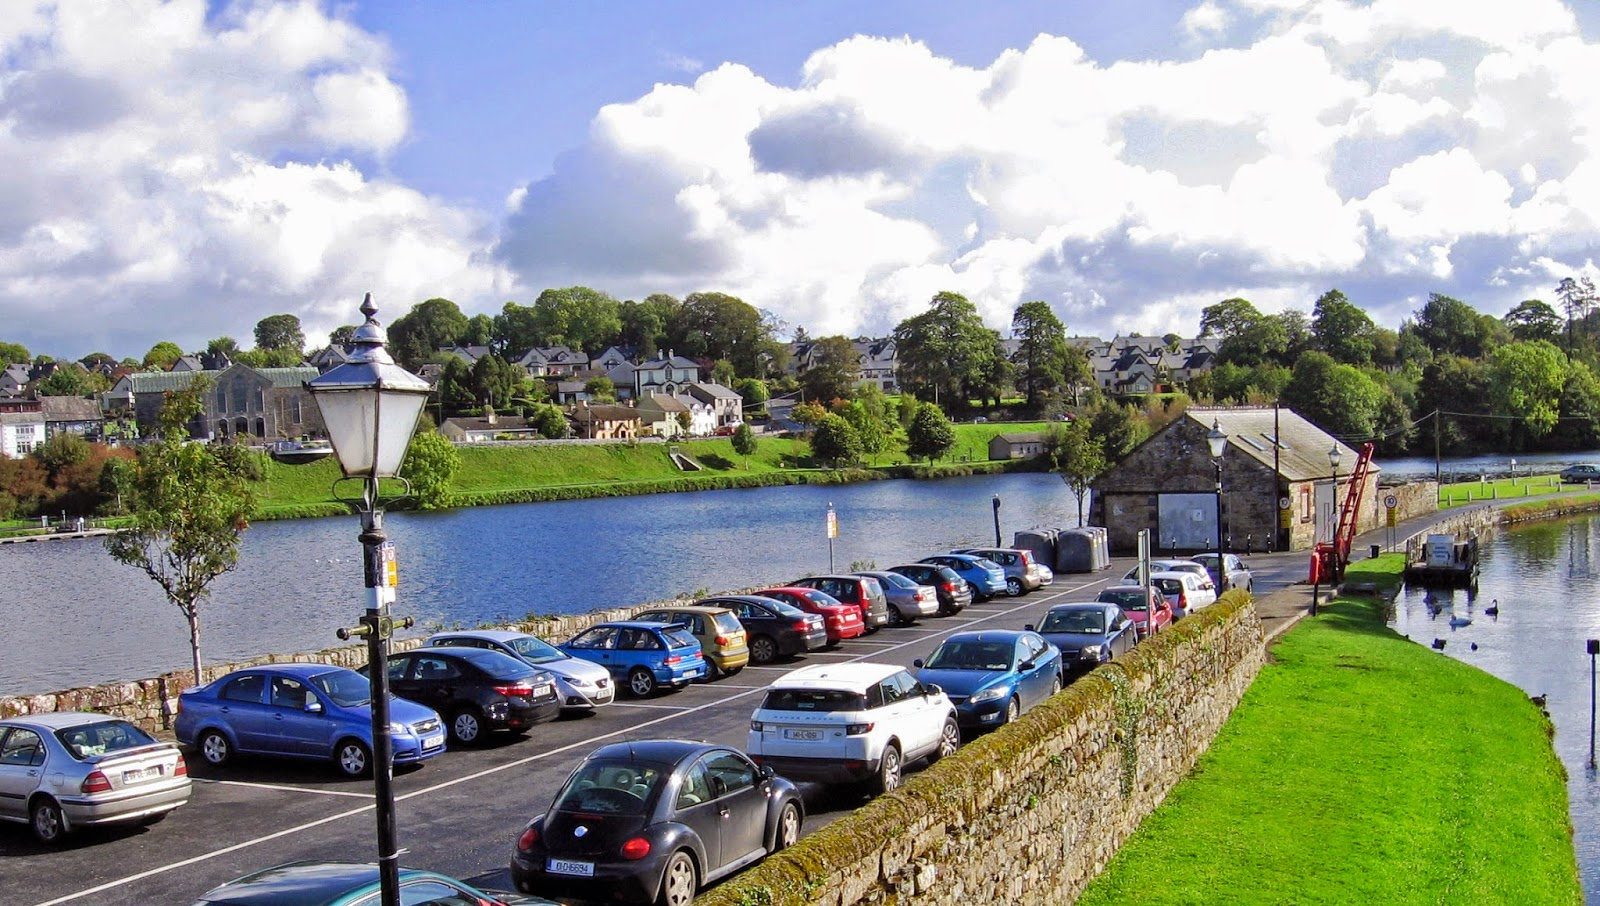 View of village of Ballina from across the River Shannon in County Clare